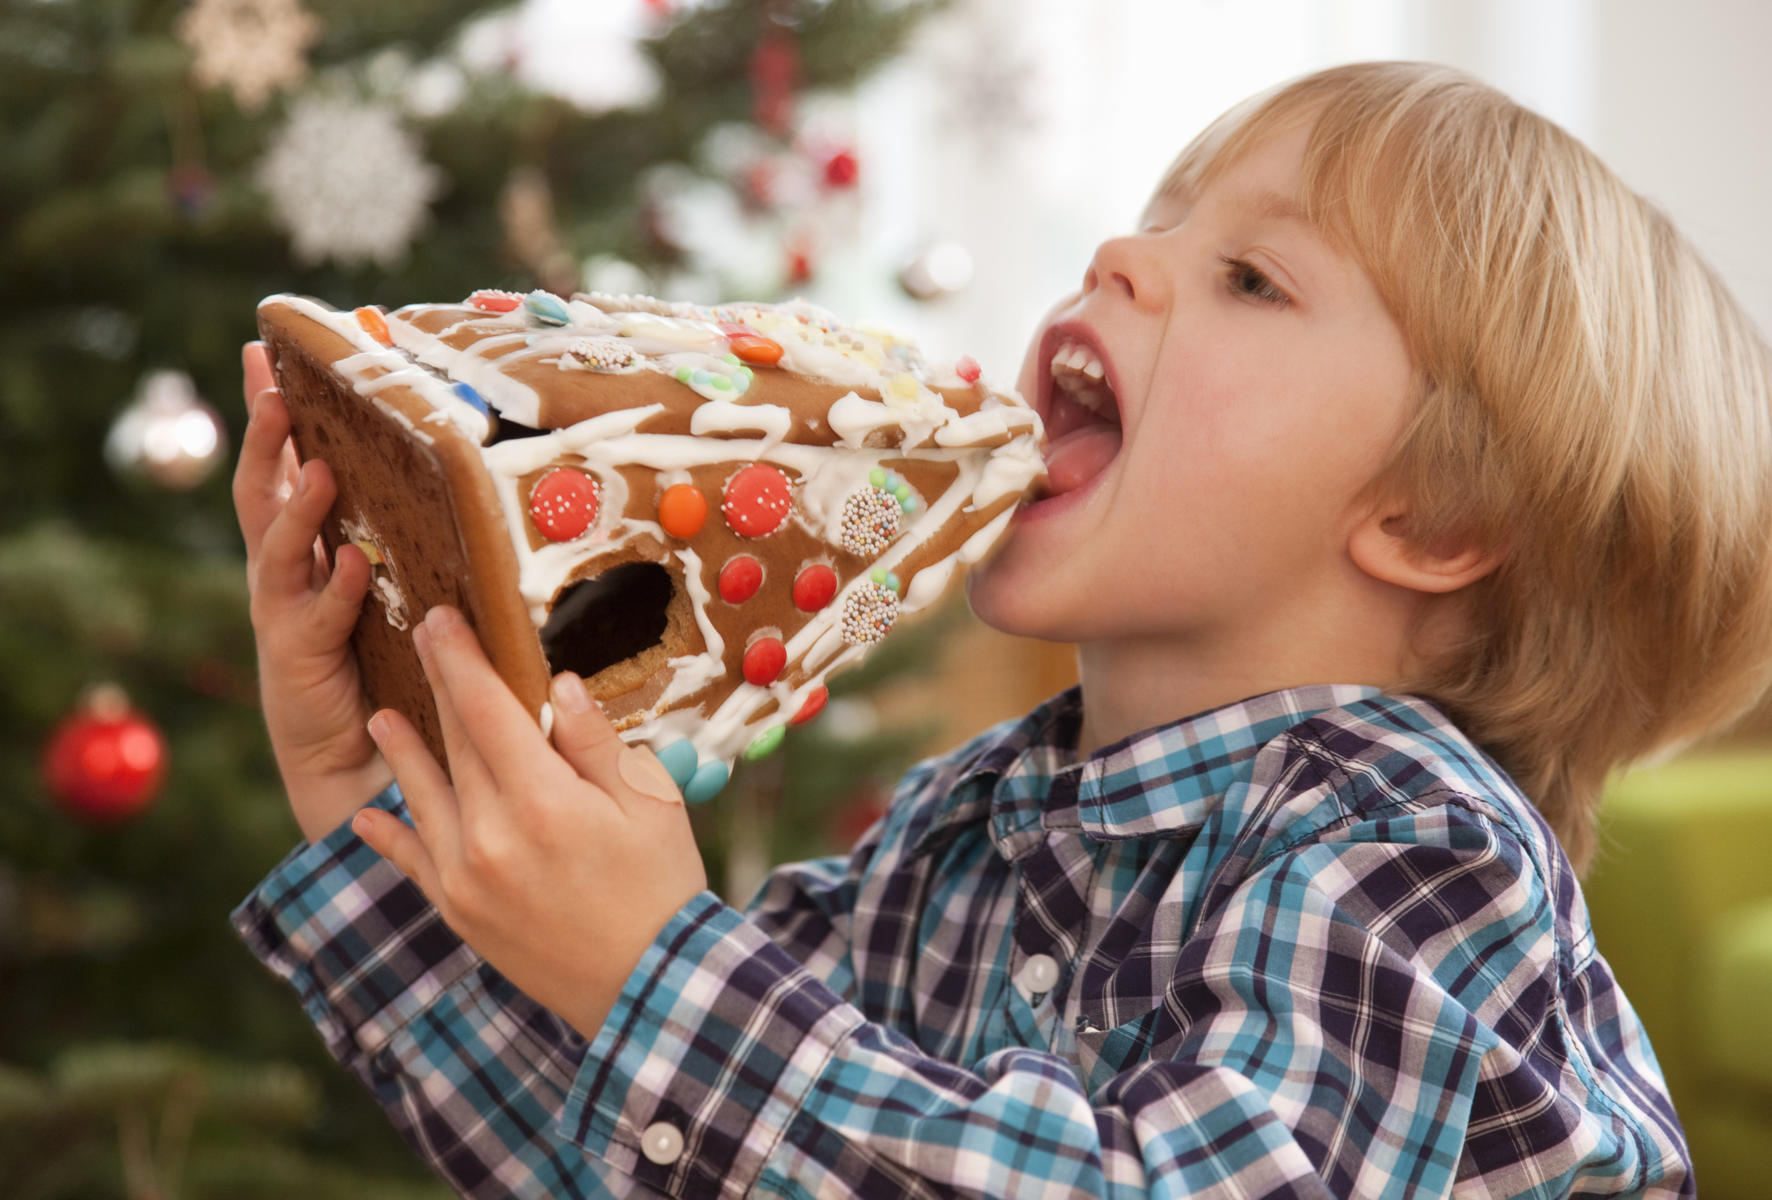 Boy eating entire gingerbread house